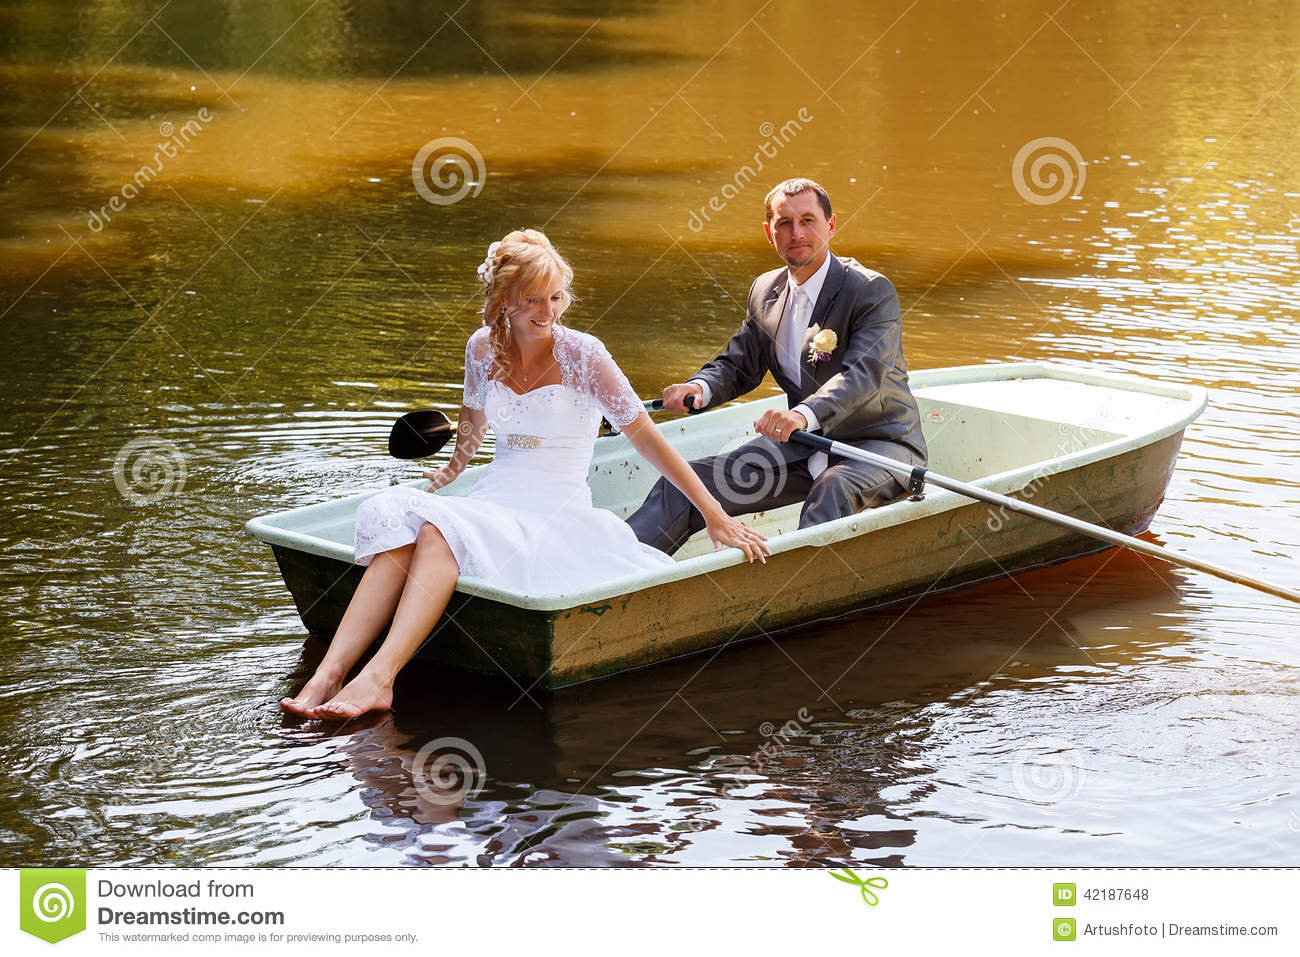 Young Just Married Bride And Groom On Boat Stock Photo - Image: 42187648